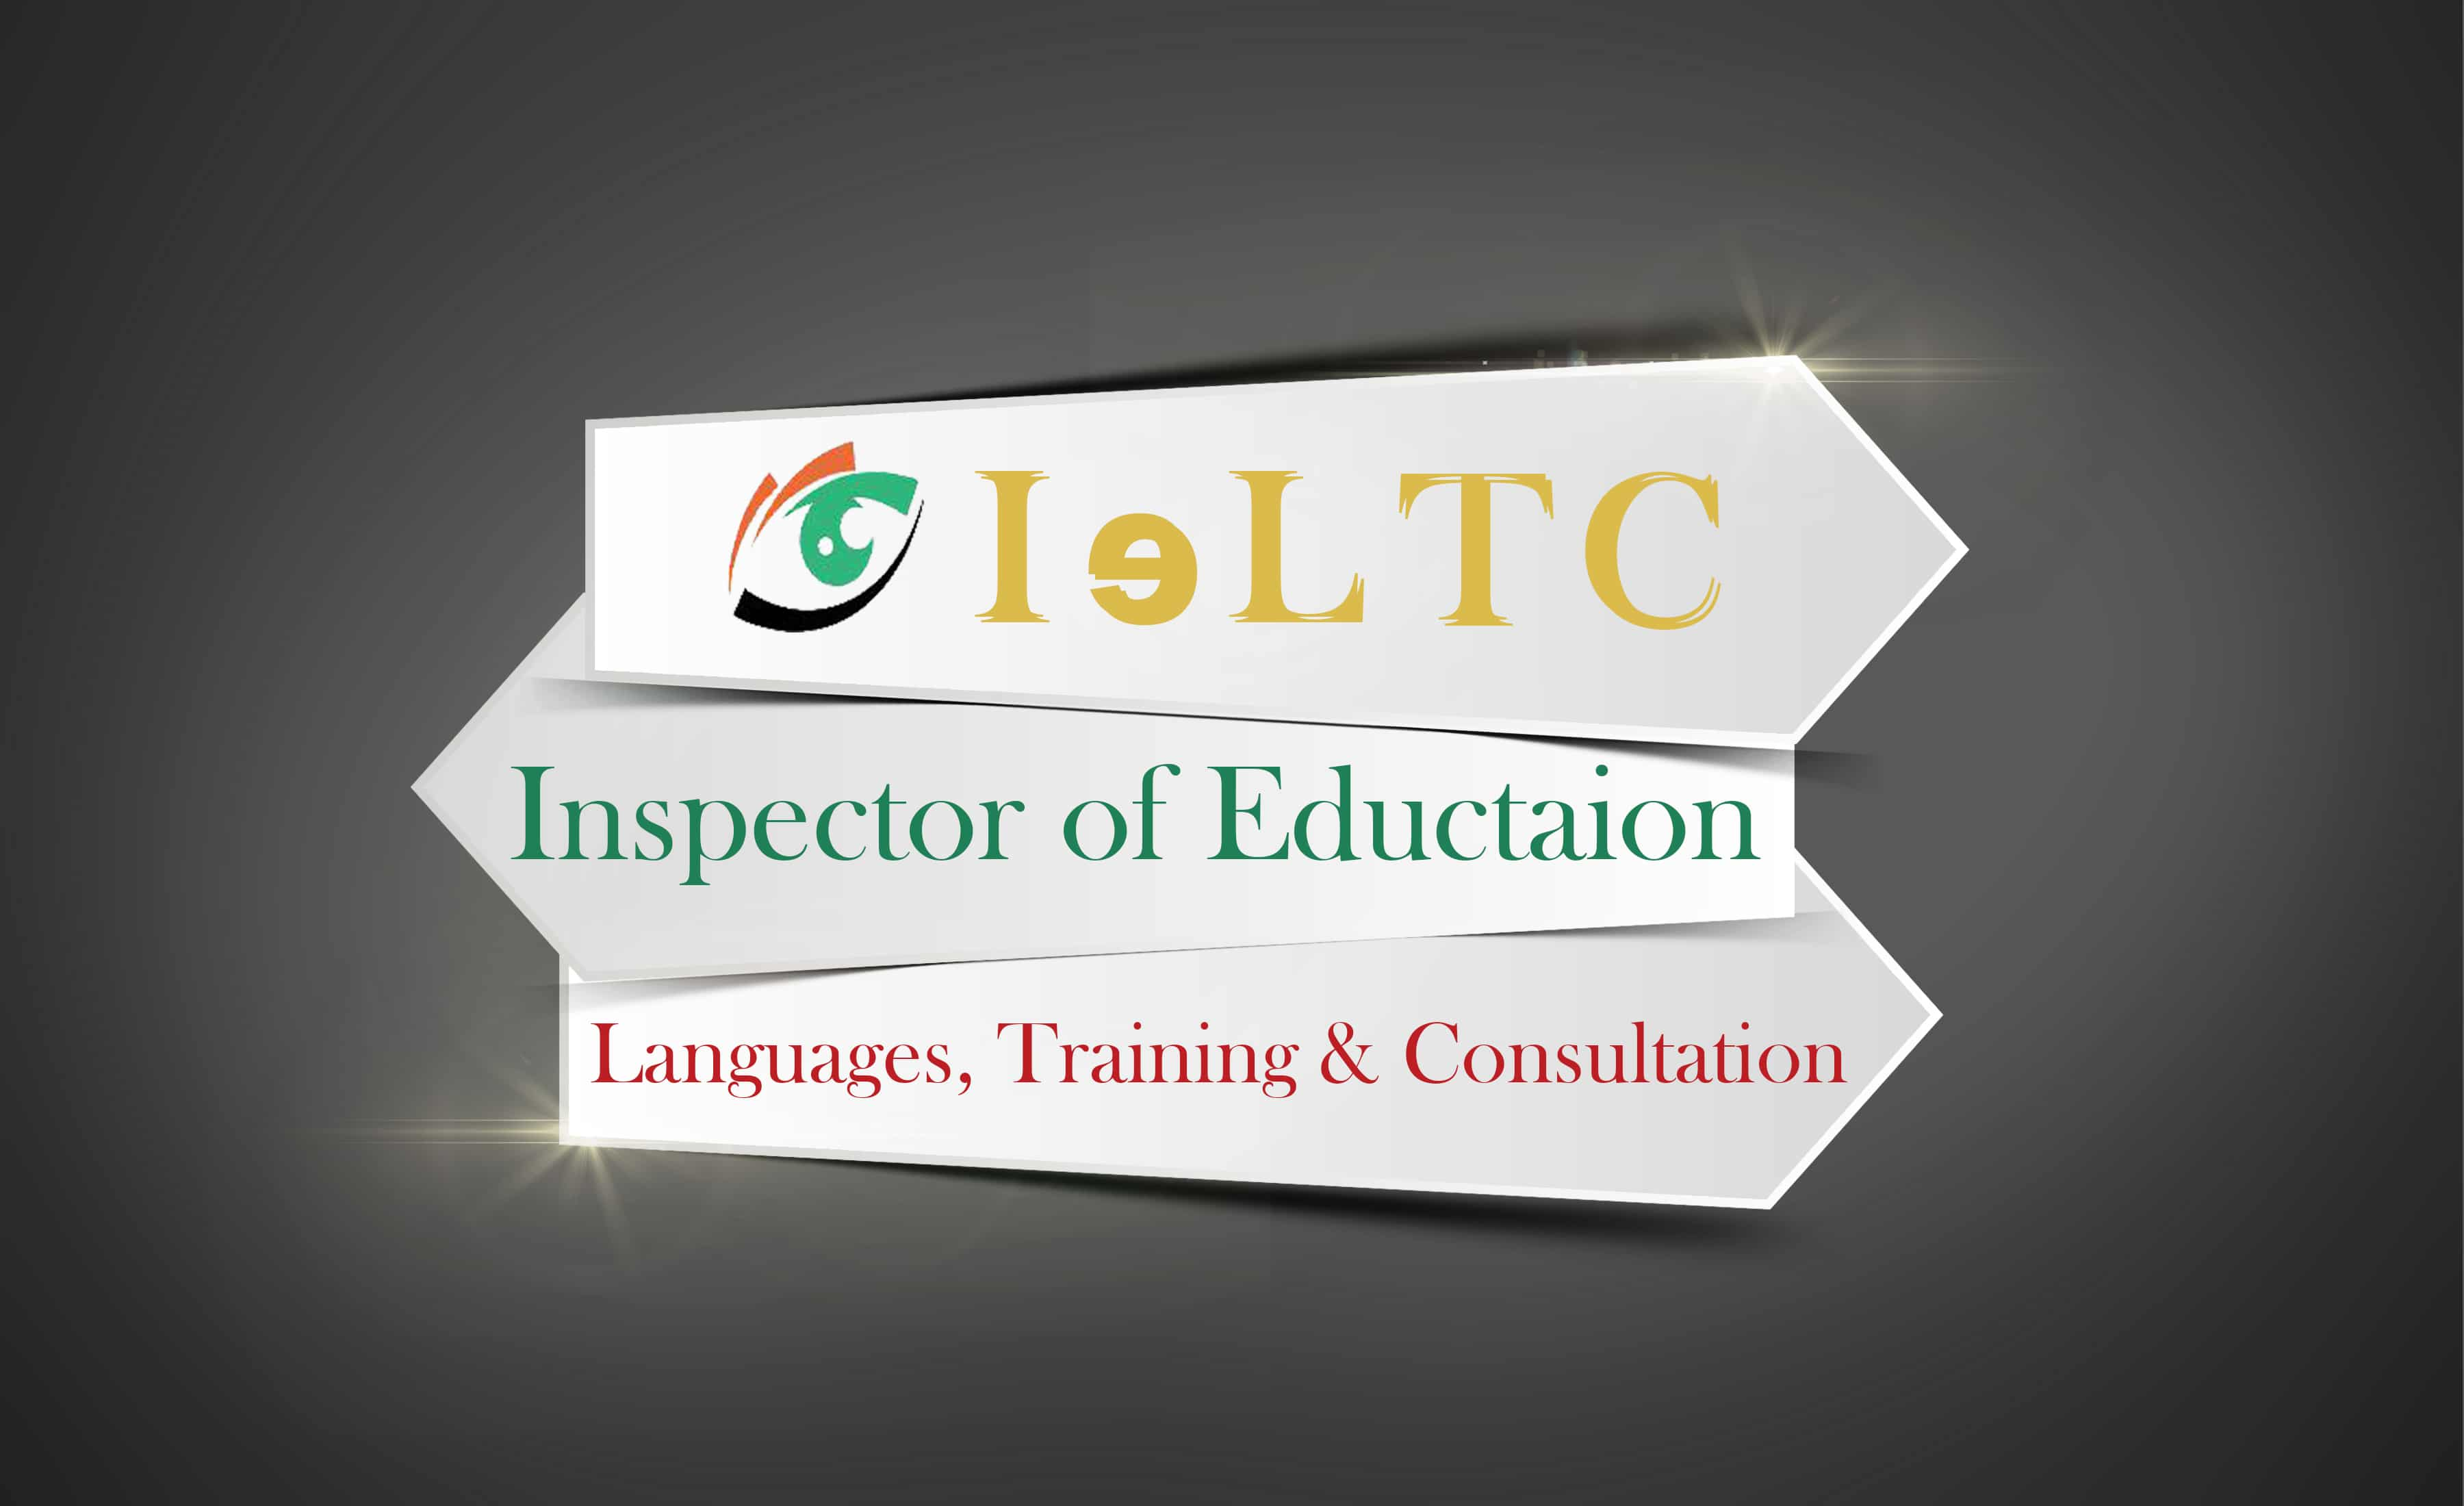 Logo for IELTC, English Language course provider